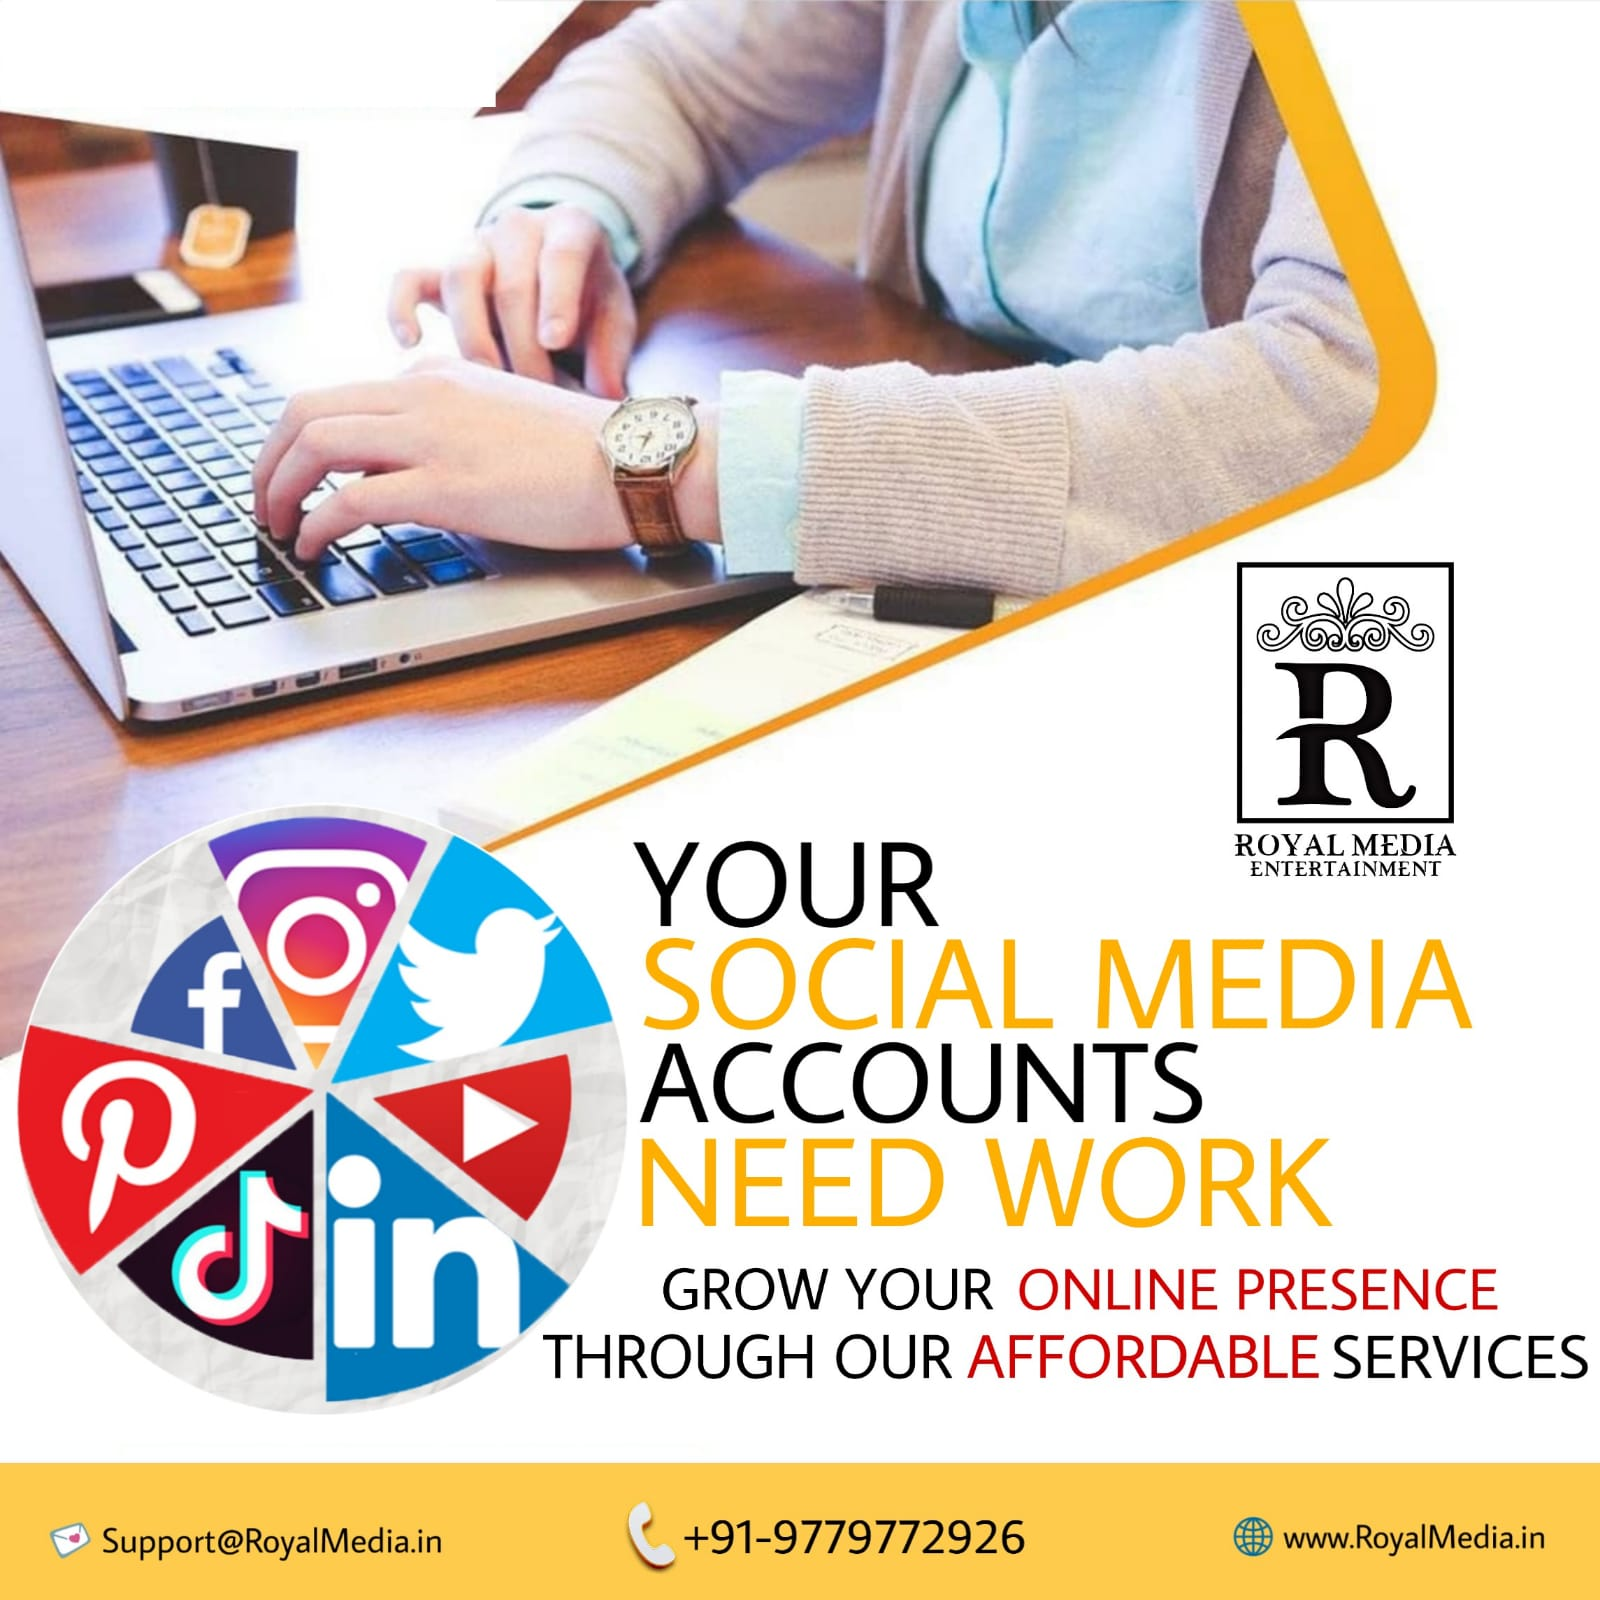 We provide the best Services to grow your SOCIAL MEDIA ACCOUNTS